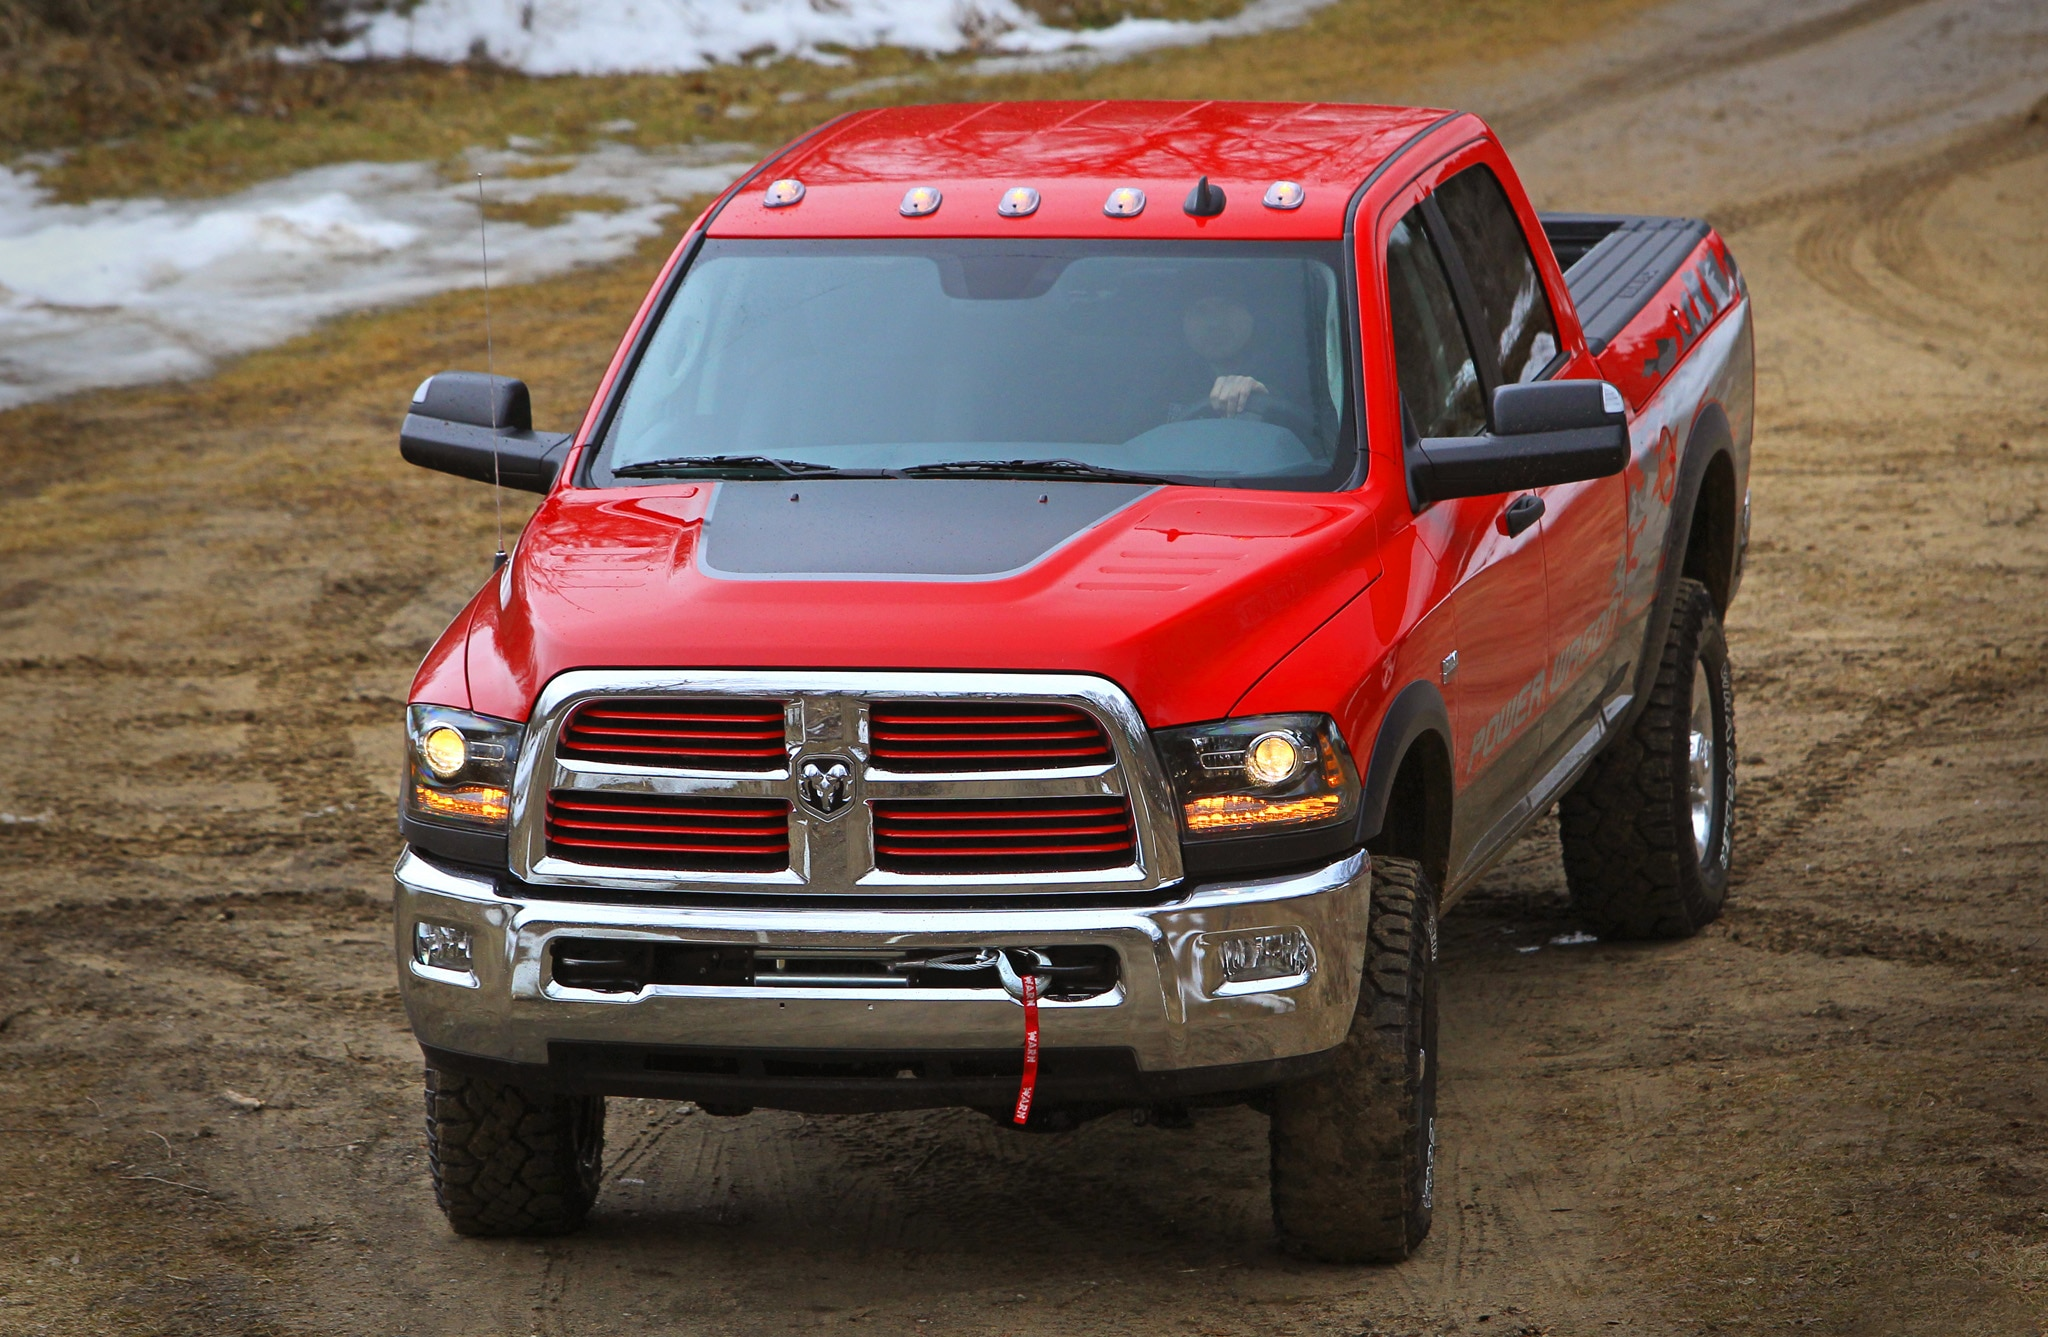 2014 Ram 2500 Power Wagon front end 02